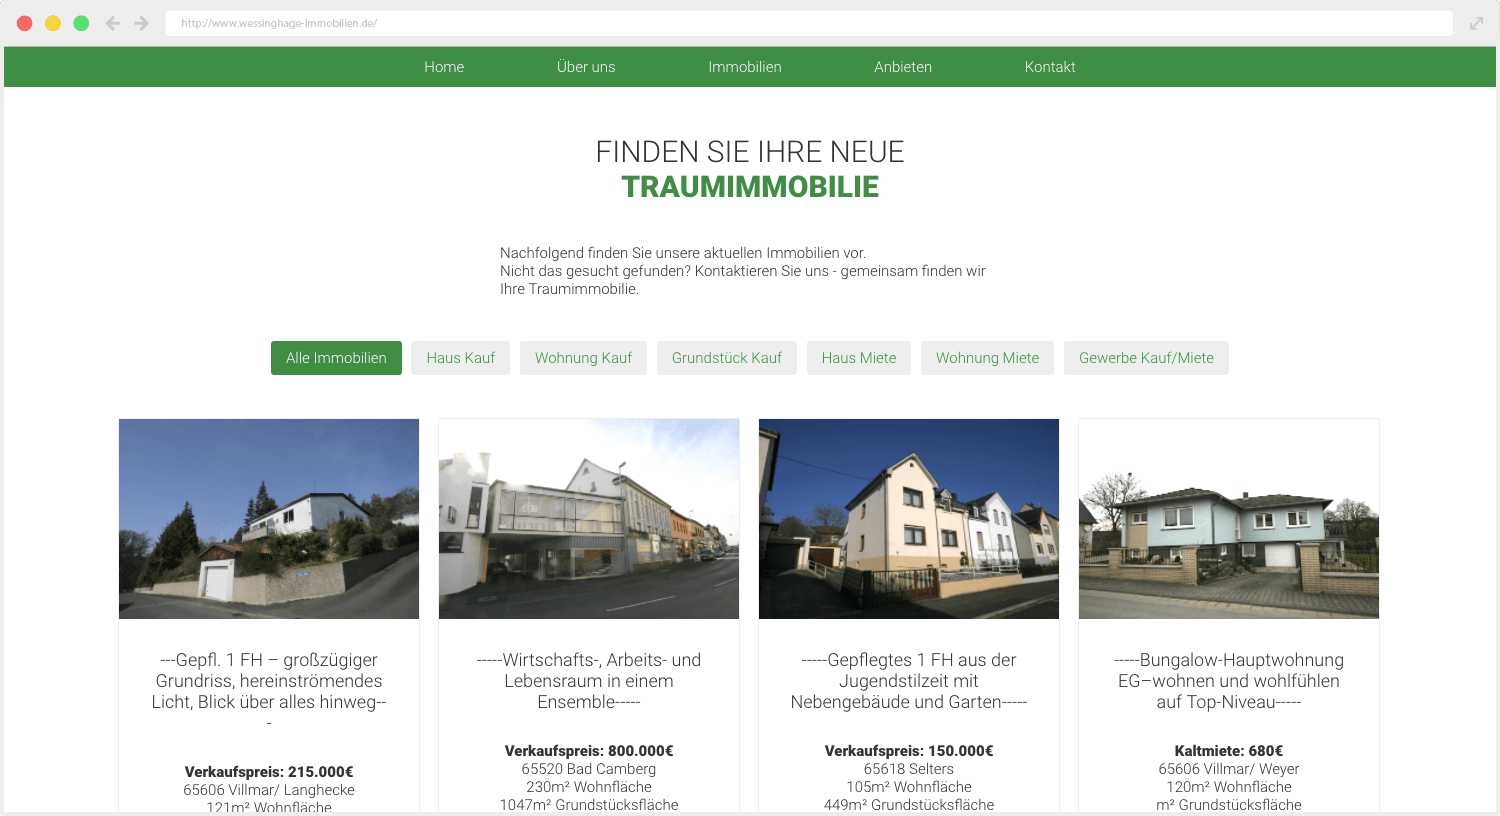 Wessinghage Immobilien Plugin